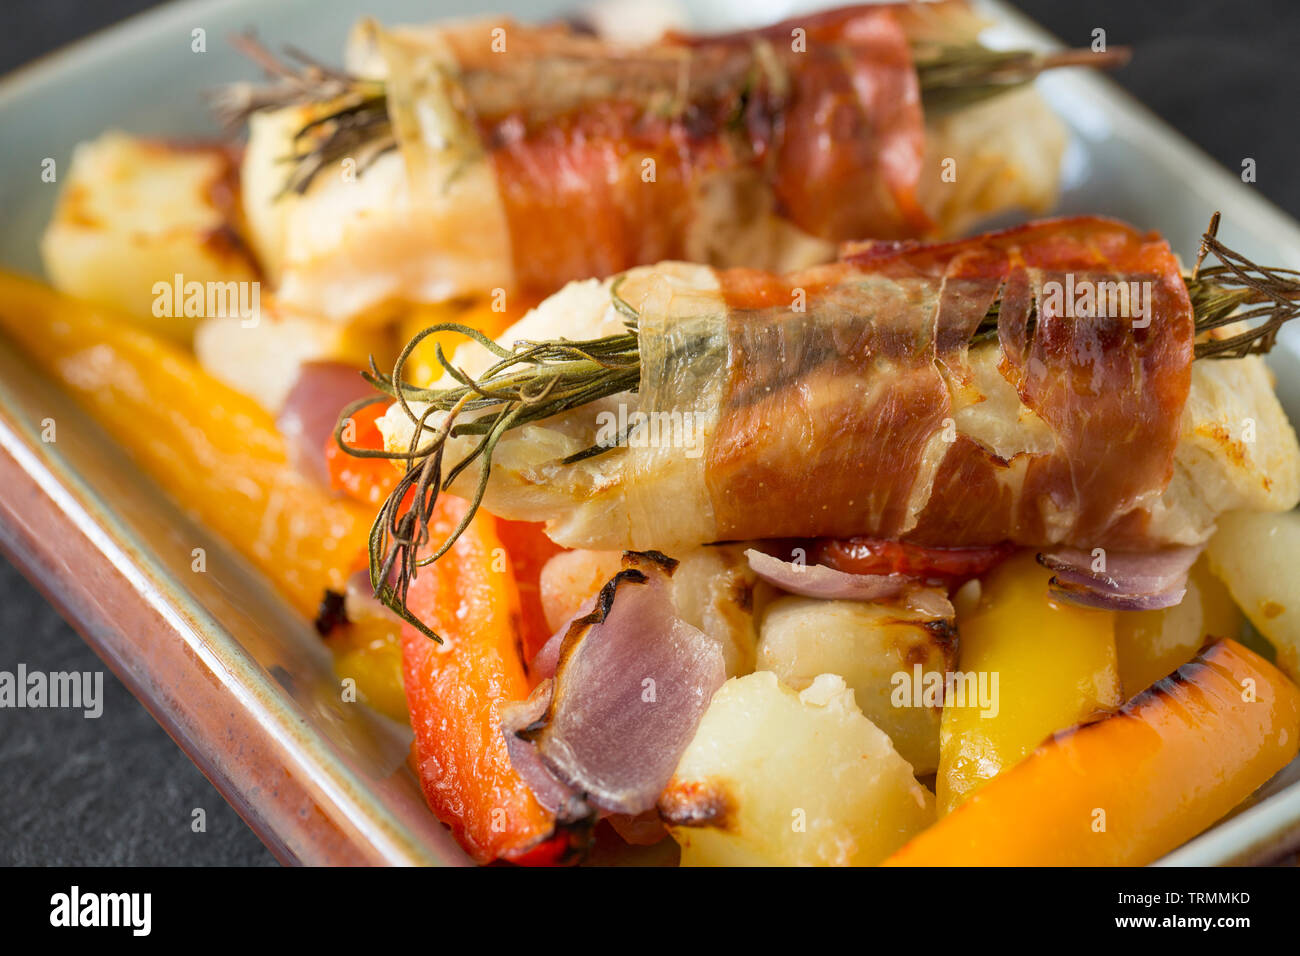 Fillets of line-caught pollack, Pollachius pollachius, that have been marinated in a garlic and lemon juice before being wrapped in Parma ham with fre - Stock Image